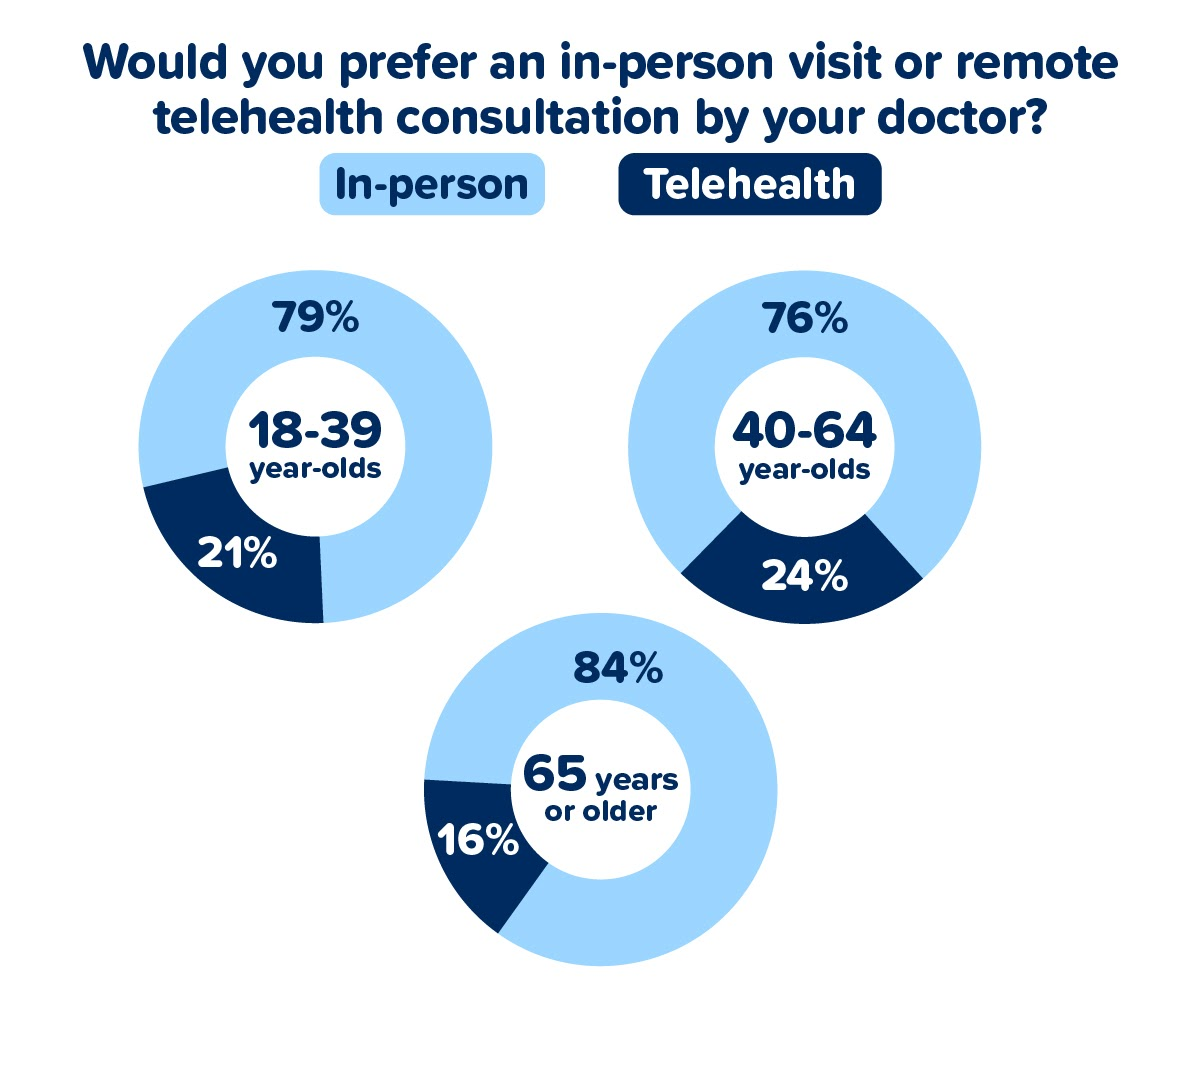 Would you prefer an in-person visit or remote telehealth consultation by your doctor?